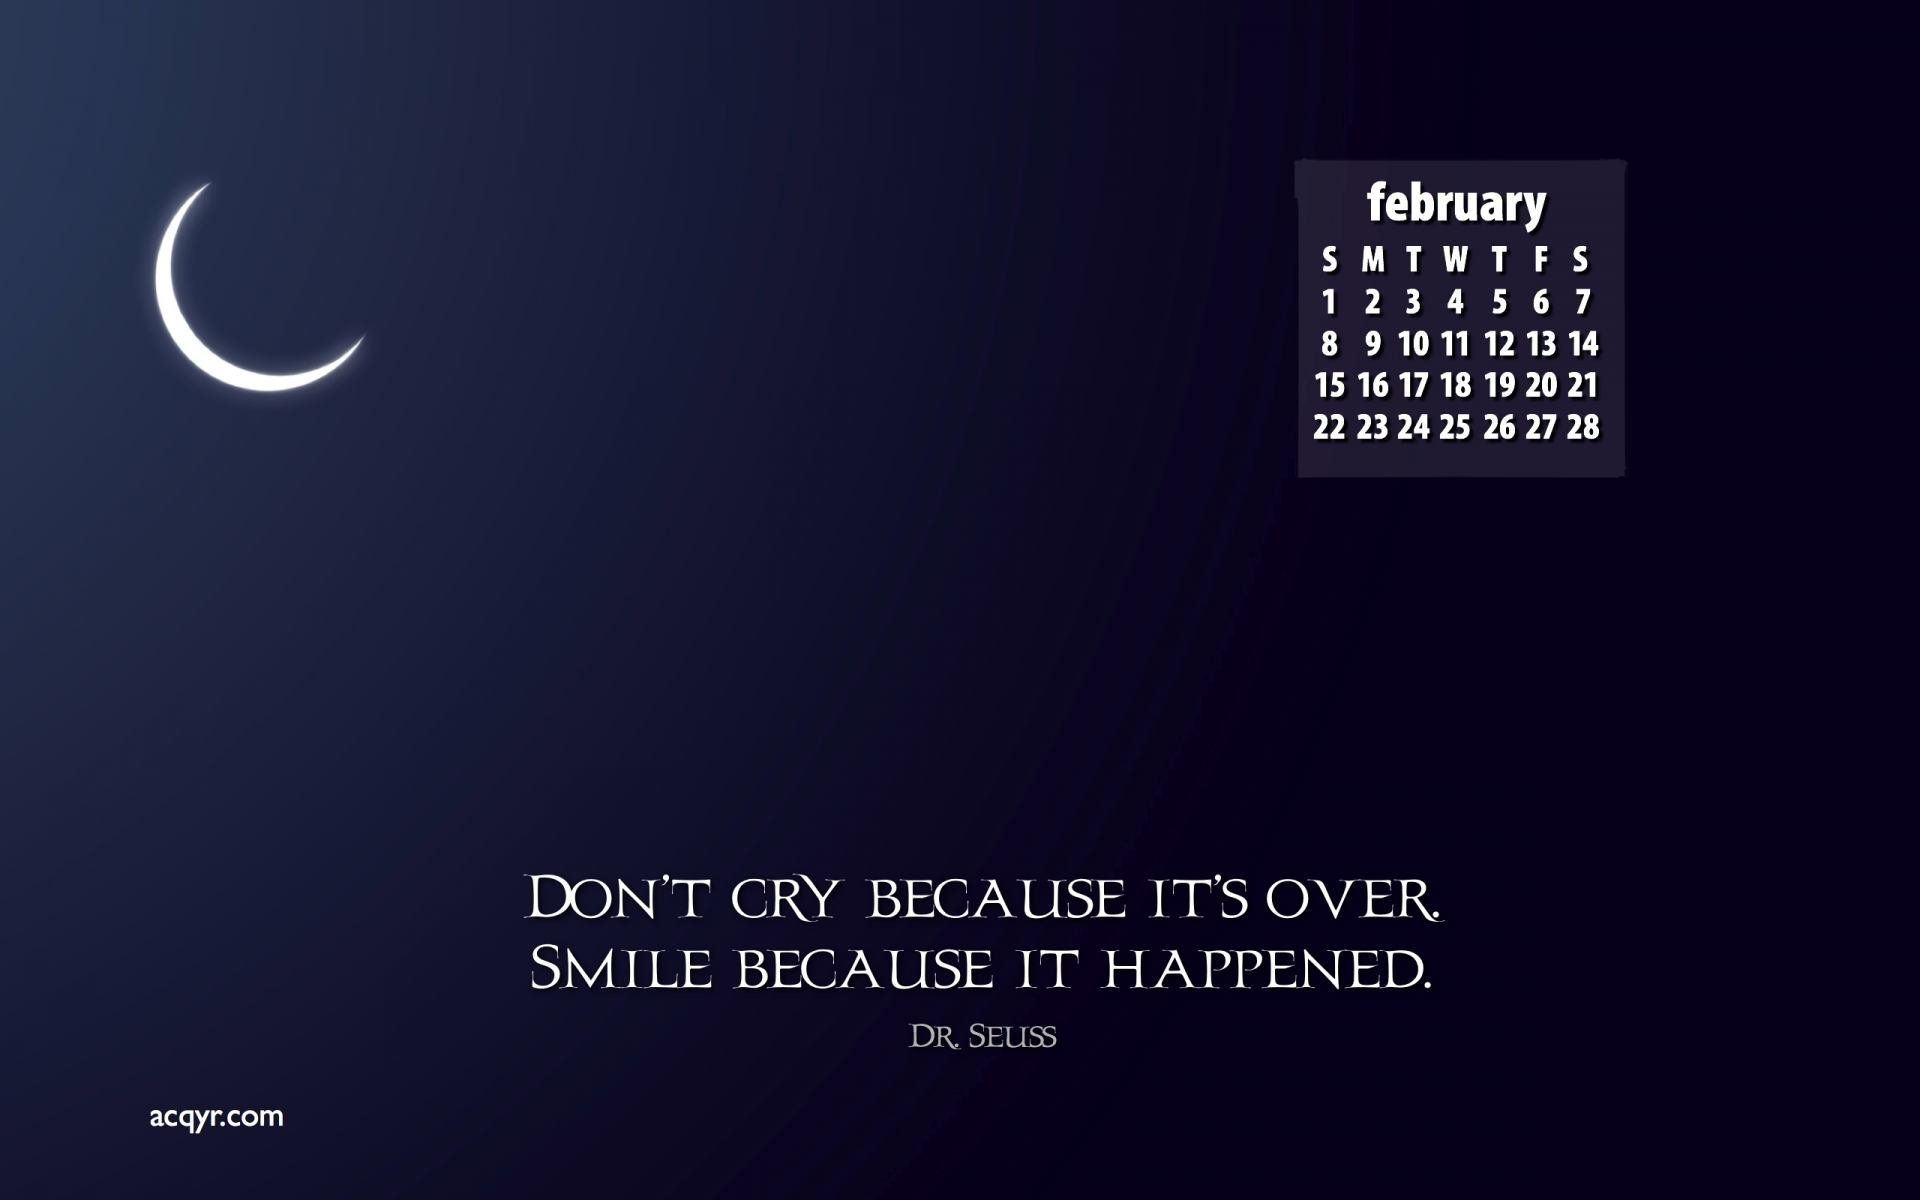 FEBRUARY WALLPAPERS FREE Wallpapers Background images 1920x1200